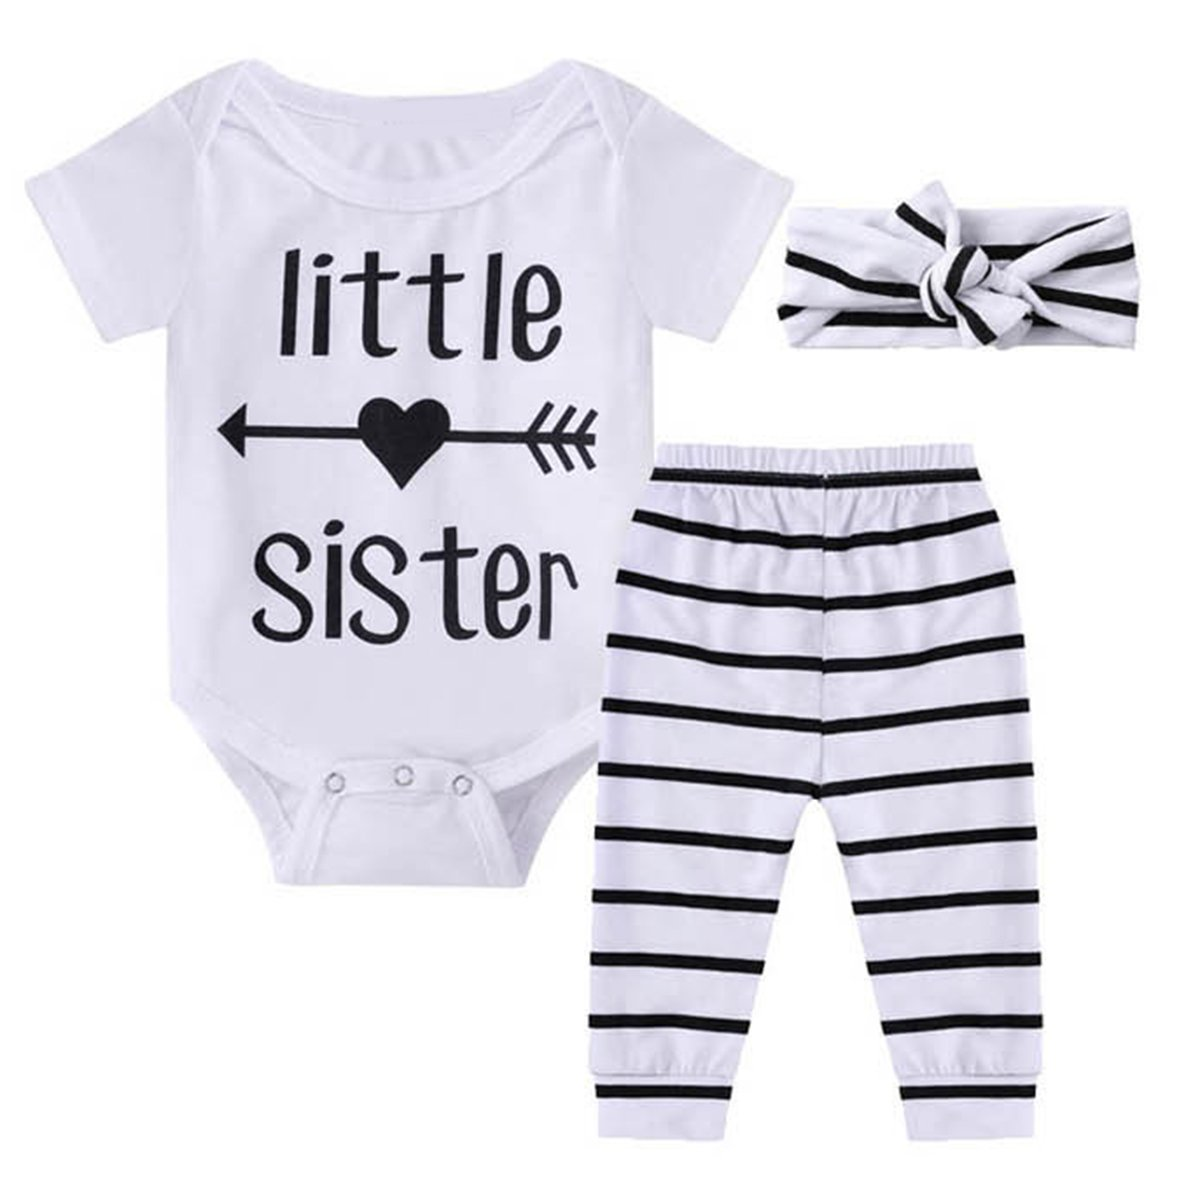 Puseky Baby Girls Little Sister Romper Bodysuit+Long Pants+Headband Outfits Clothes Set 0-6 Months, White+Stripe